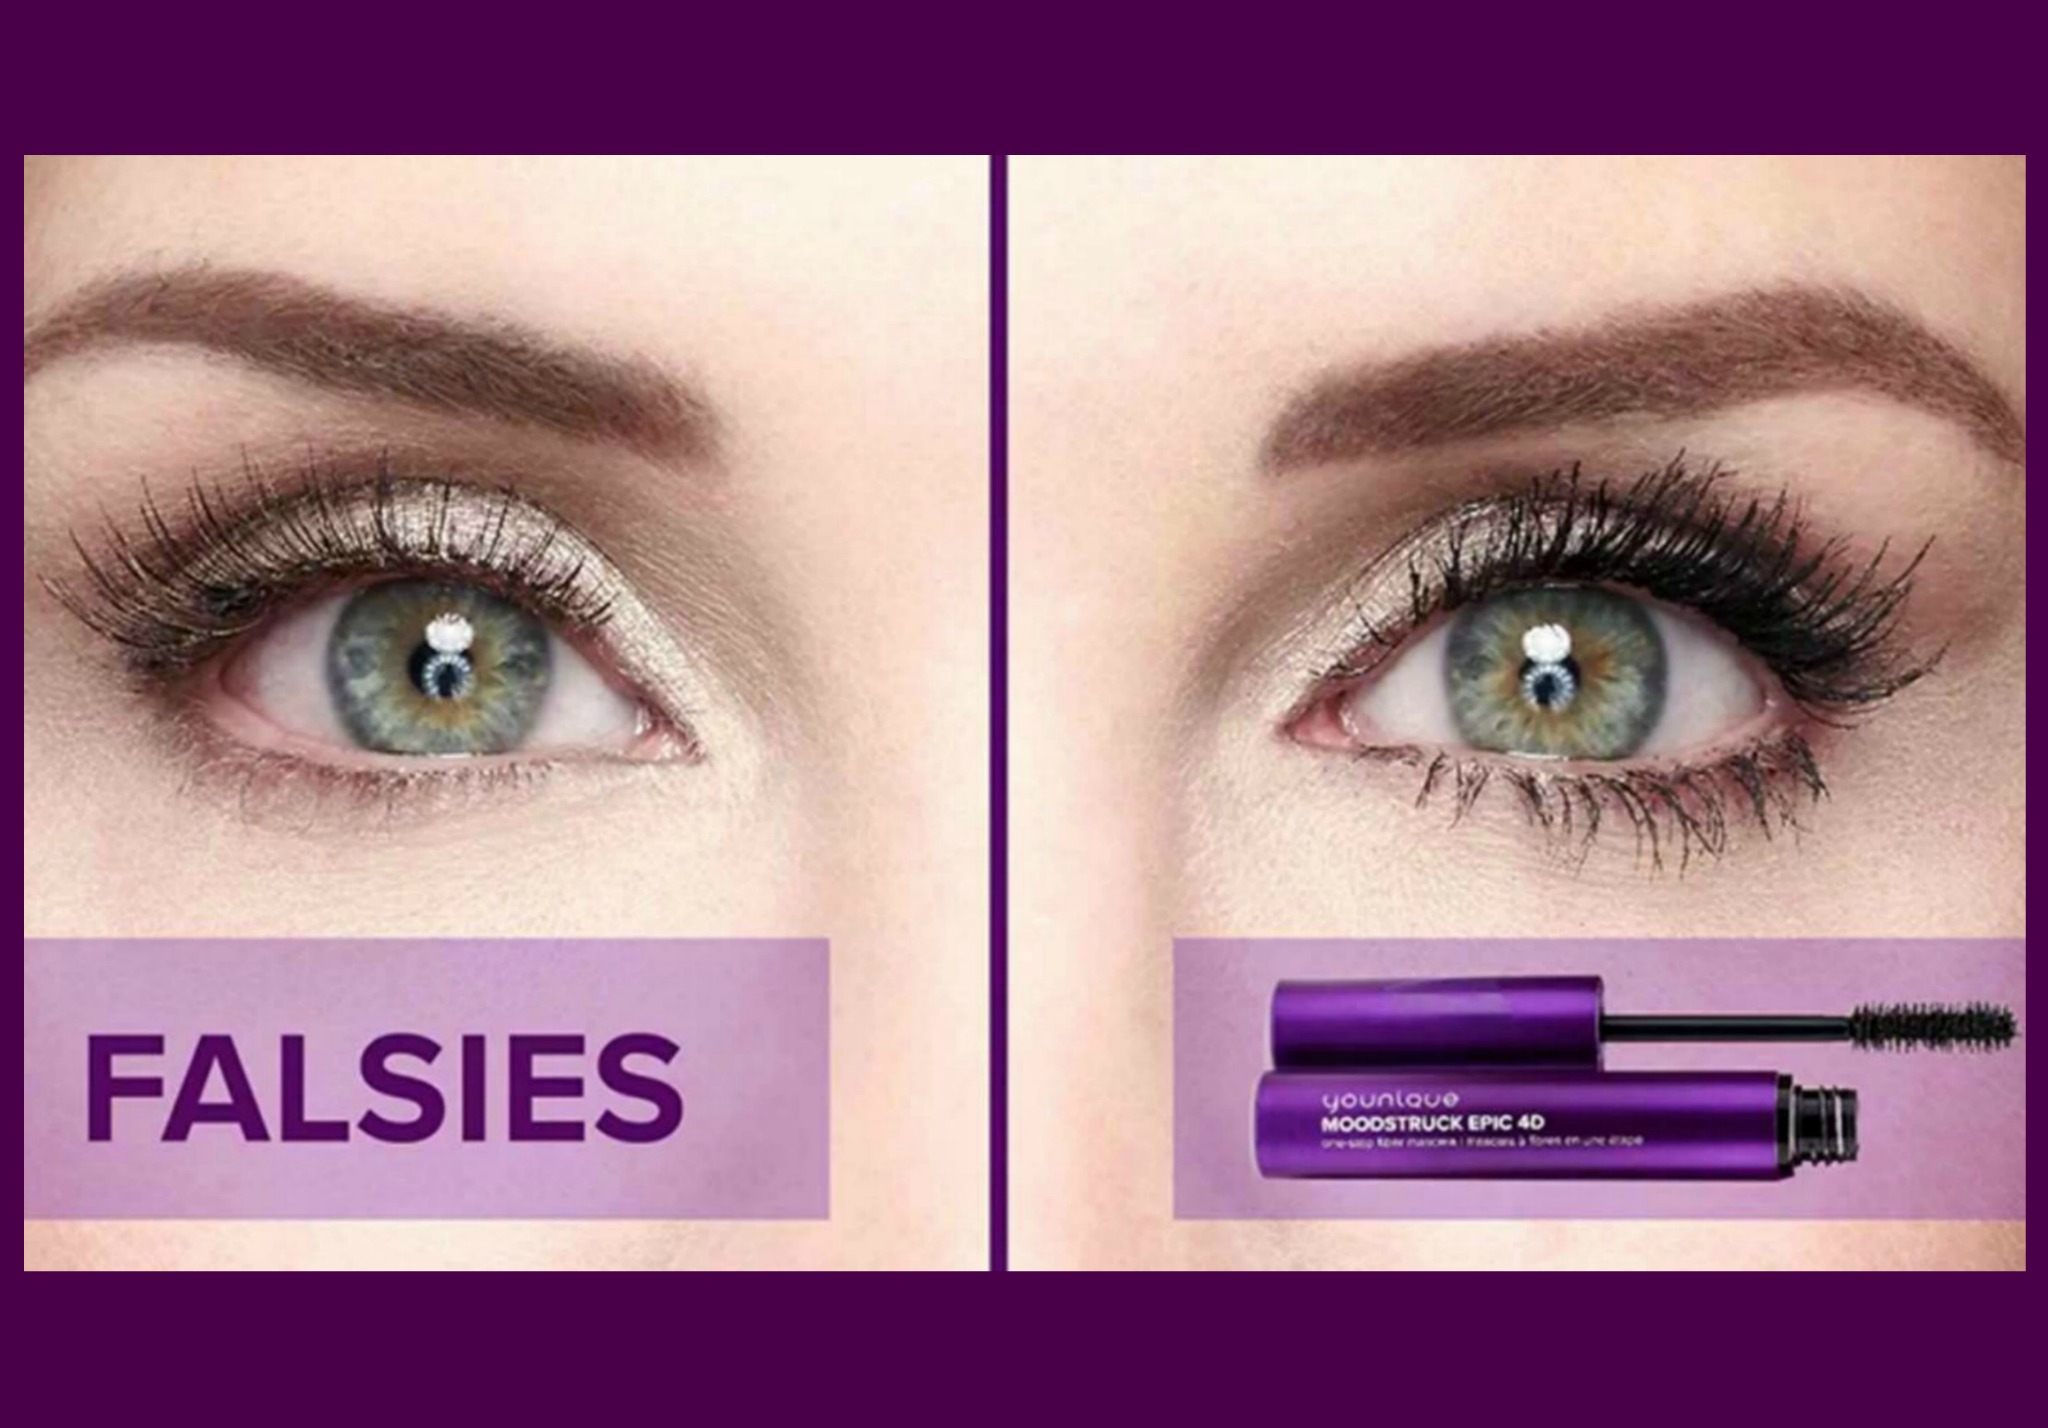 c7e6e924e05 Younique Moodstruck Epic 4D Mascara (5) - Minute With Mary